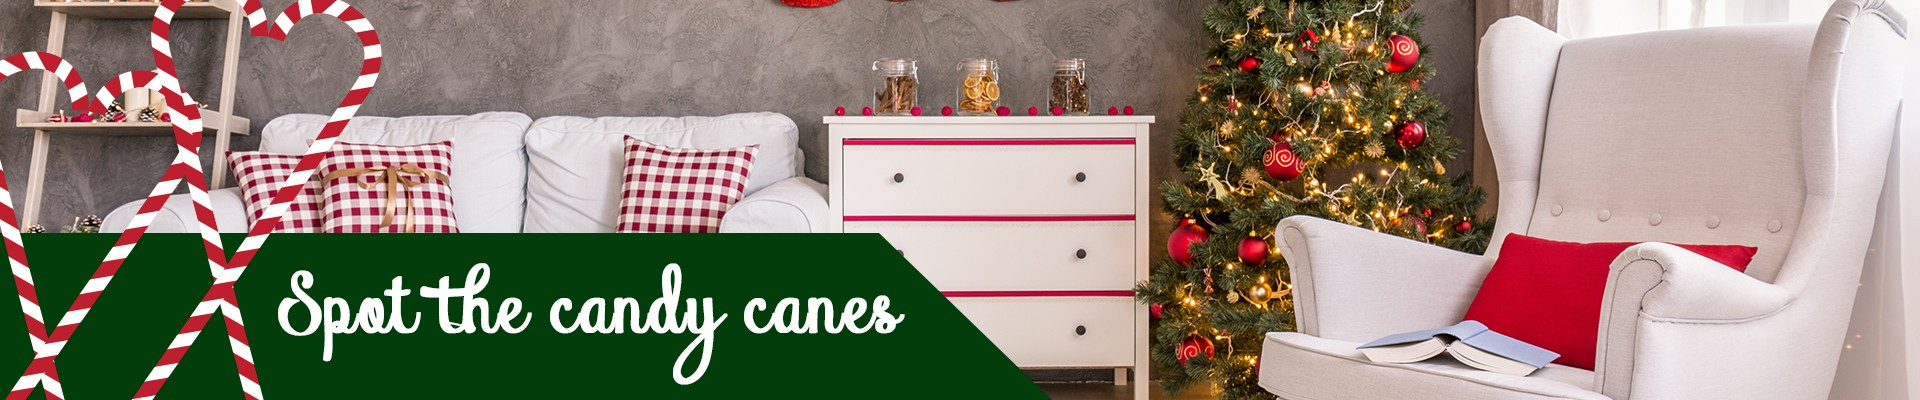 Spot the candy canes - Games to play this holiday season